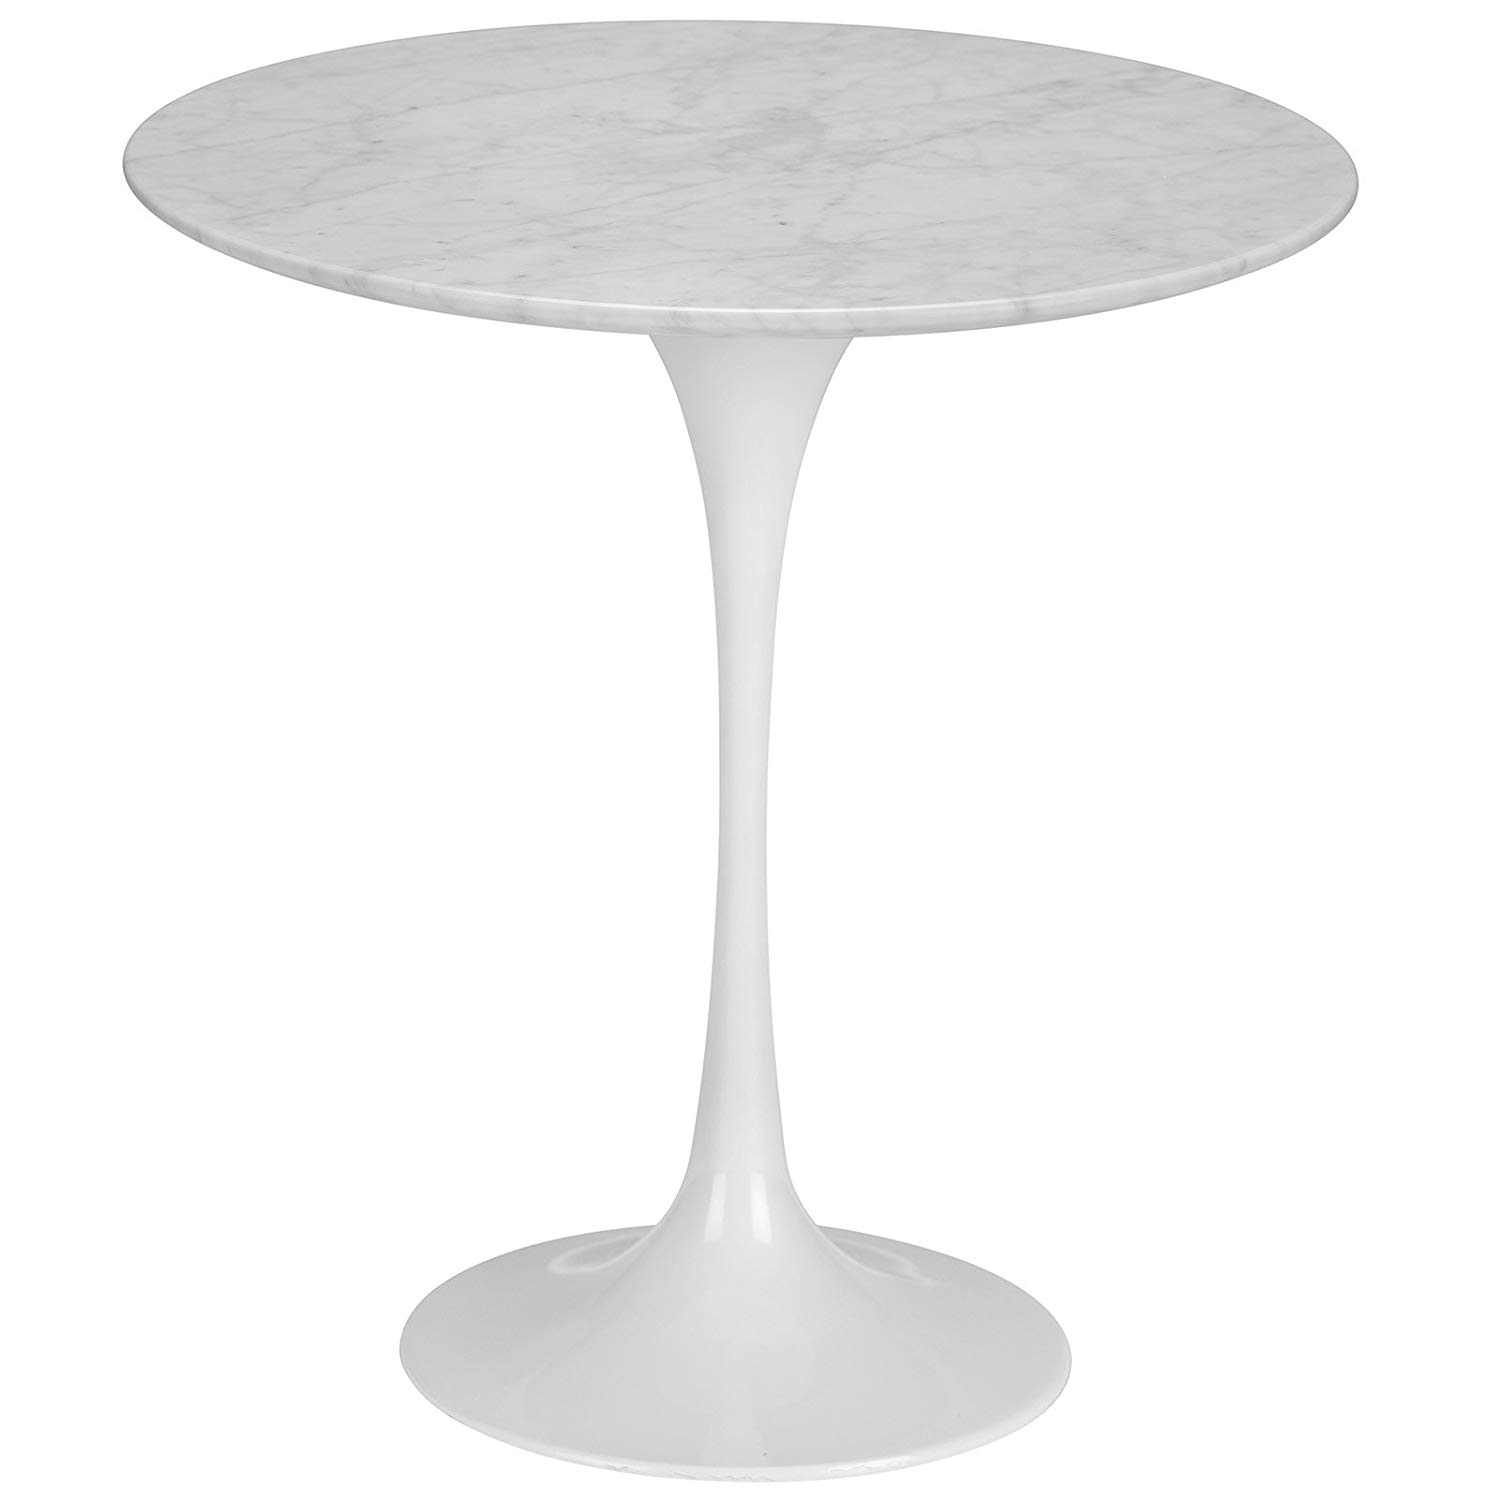 surprising inch tall round accent table decorating patio cover for rent dining covers tables stools tablecloth small chairs kitchen and ideas rentals full size lamps plus floor